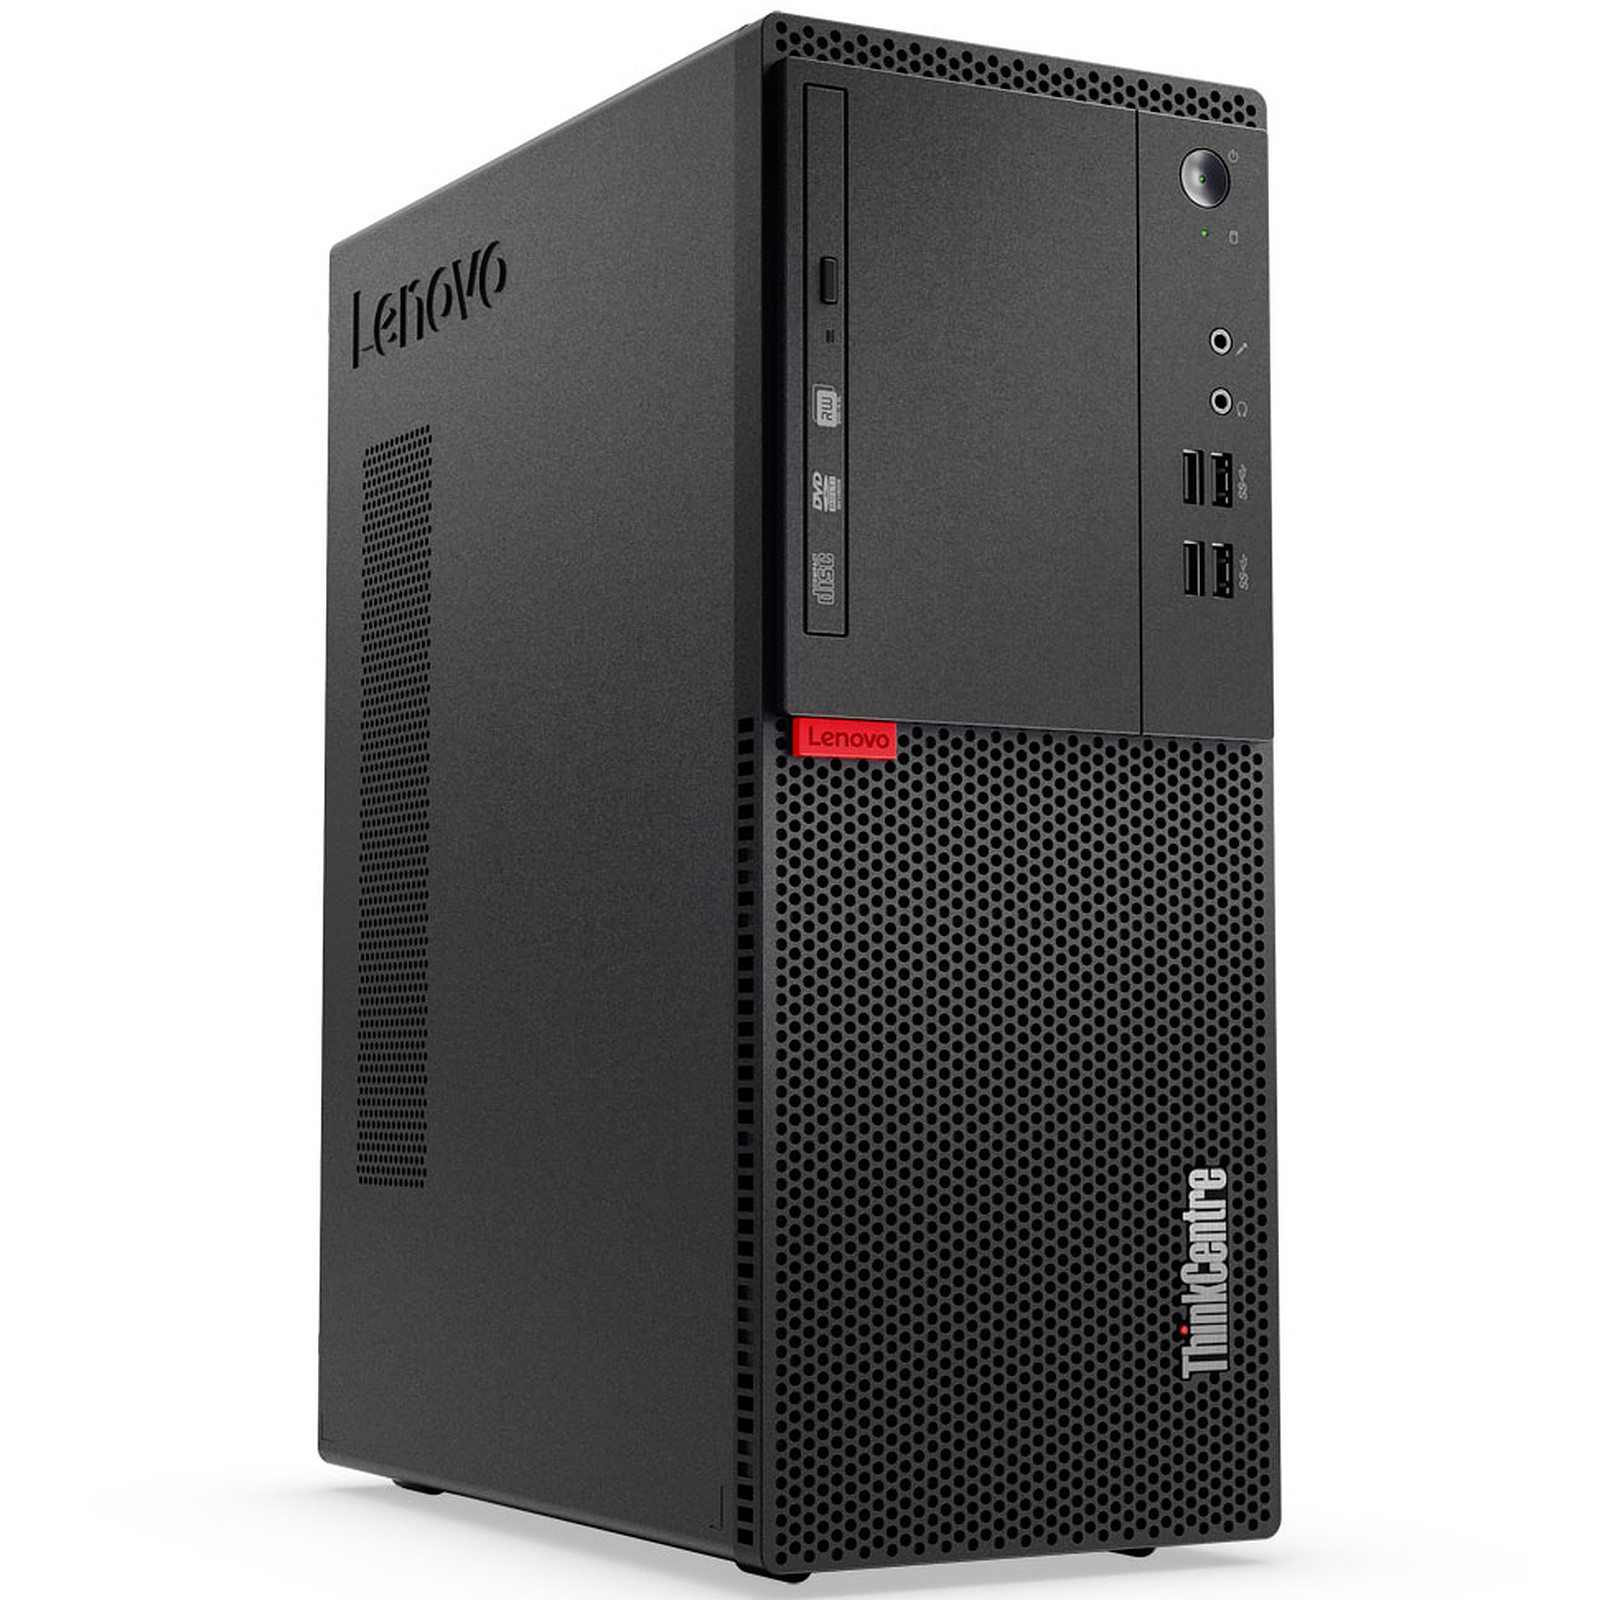 Lenovo ThinkCentre M710 Tour (10M9000CFR)